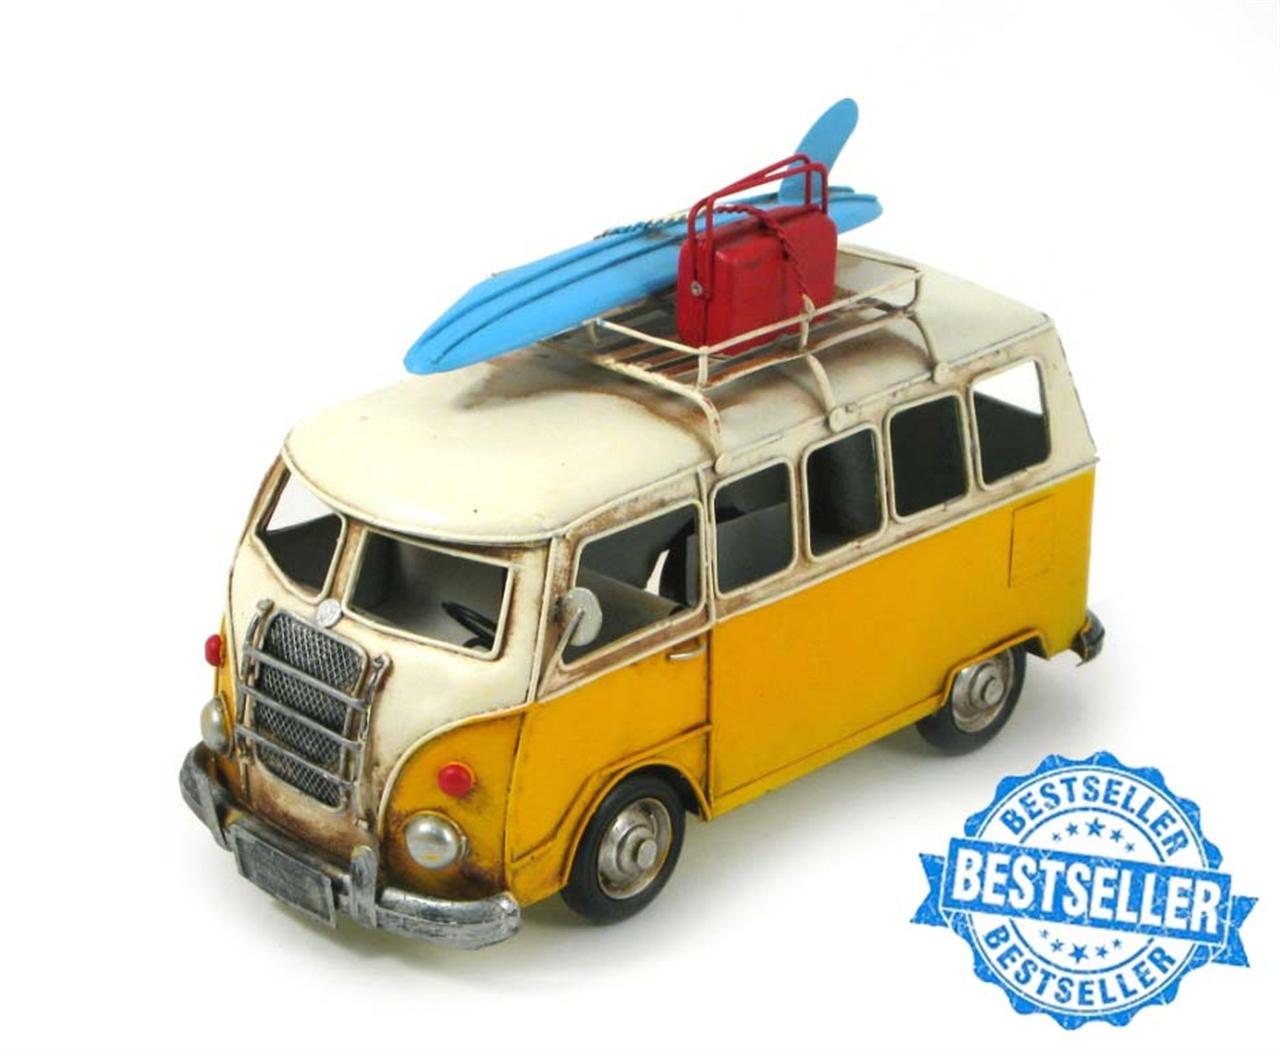 MINIATURE CAMPER WITH SURFBOARD & LUGGAGE